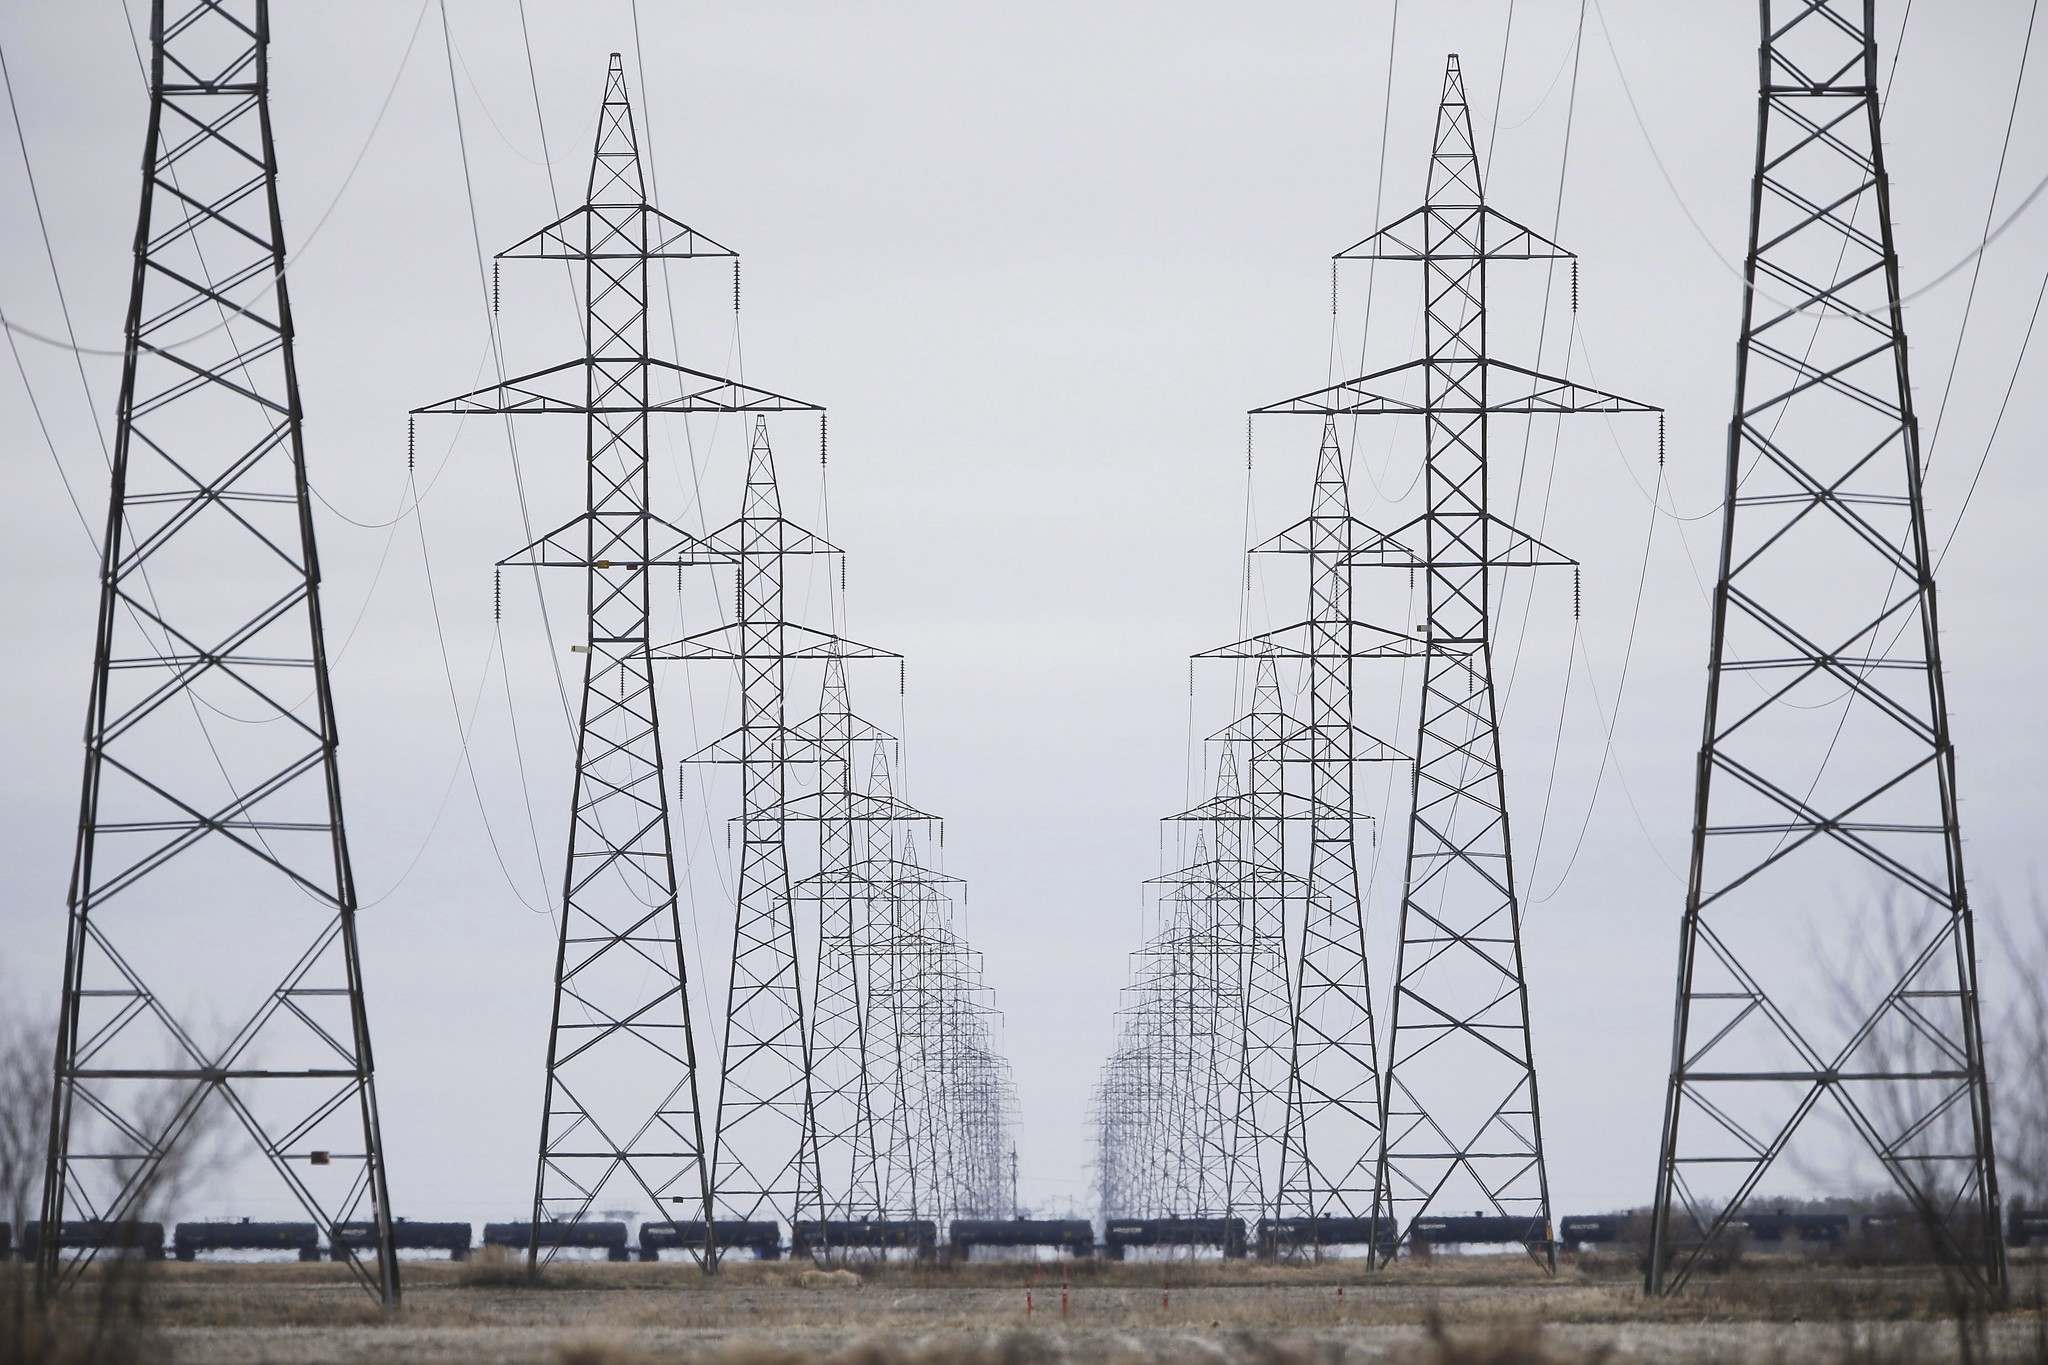 In the matter of: Seeking approval of transmission tariff